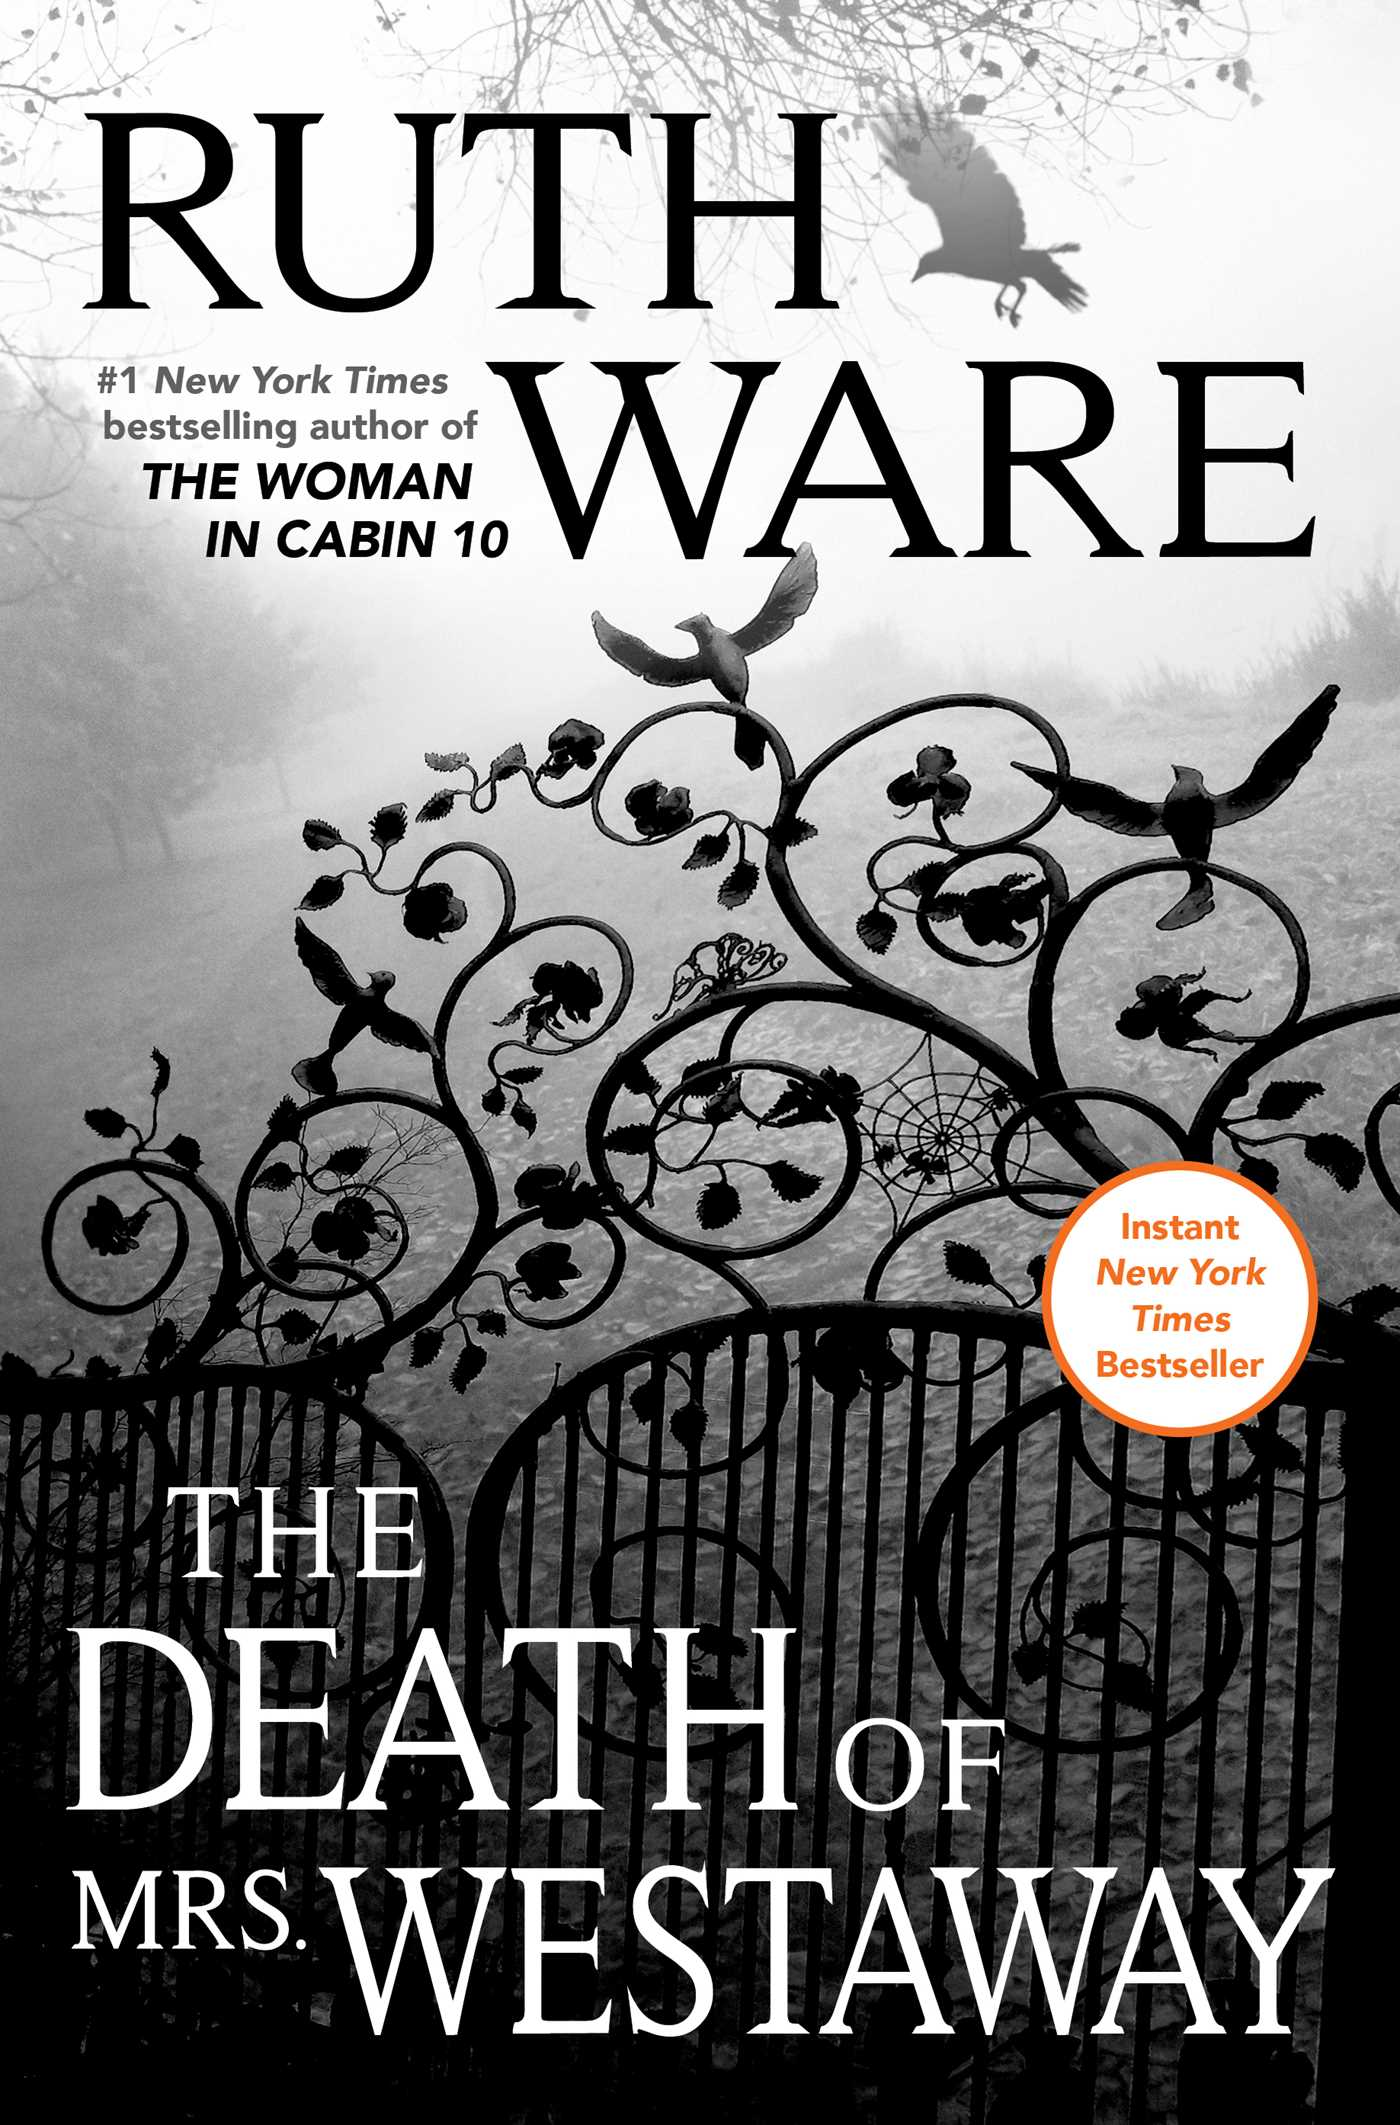 Ruth Ware - Number 1 New york times bestselling author of the woman in cabin 10 - Instant New York Times bestseller - The Death of Mrs. Westaway